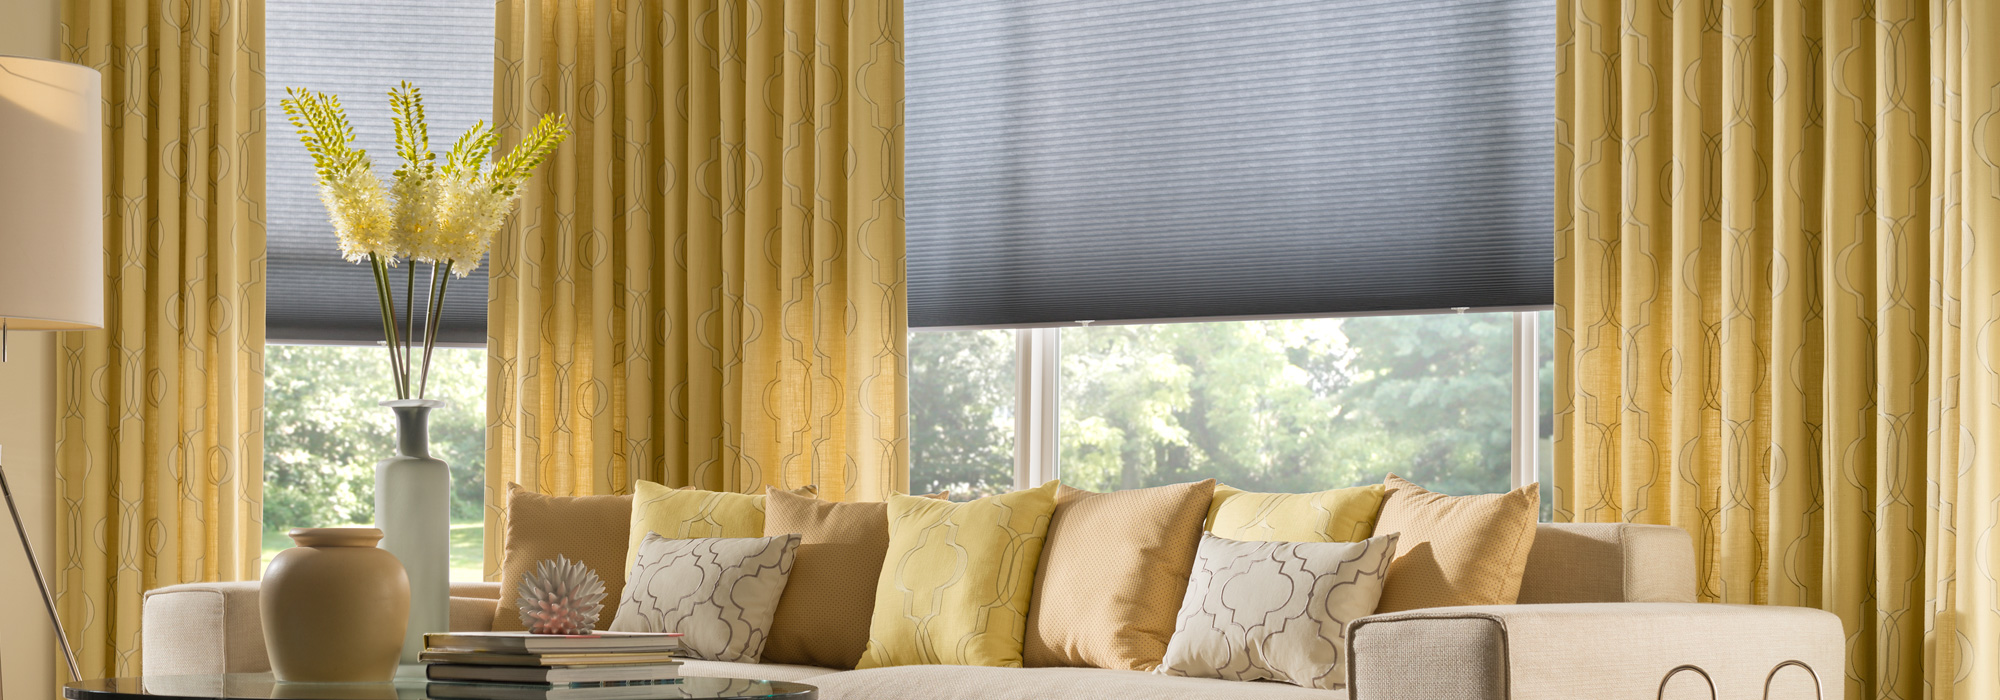 Graber Window Treatments Home Decor